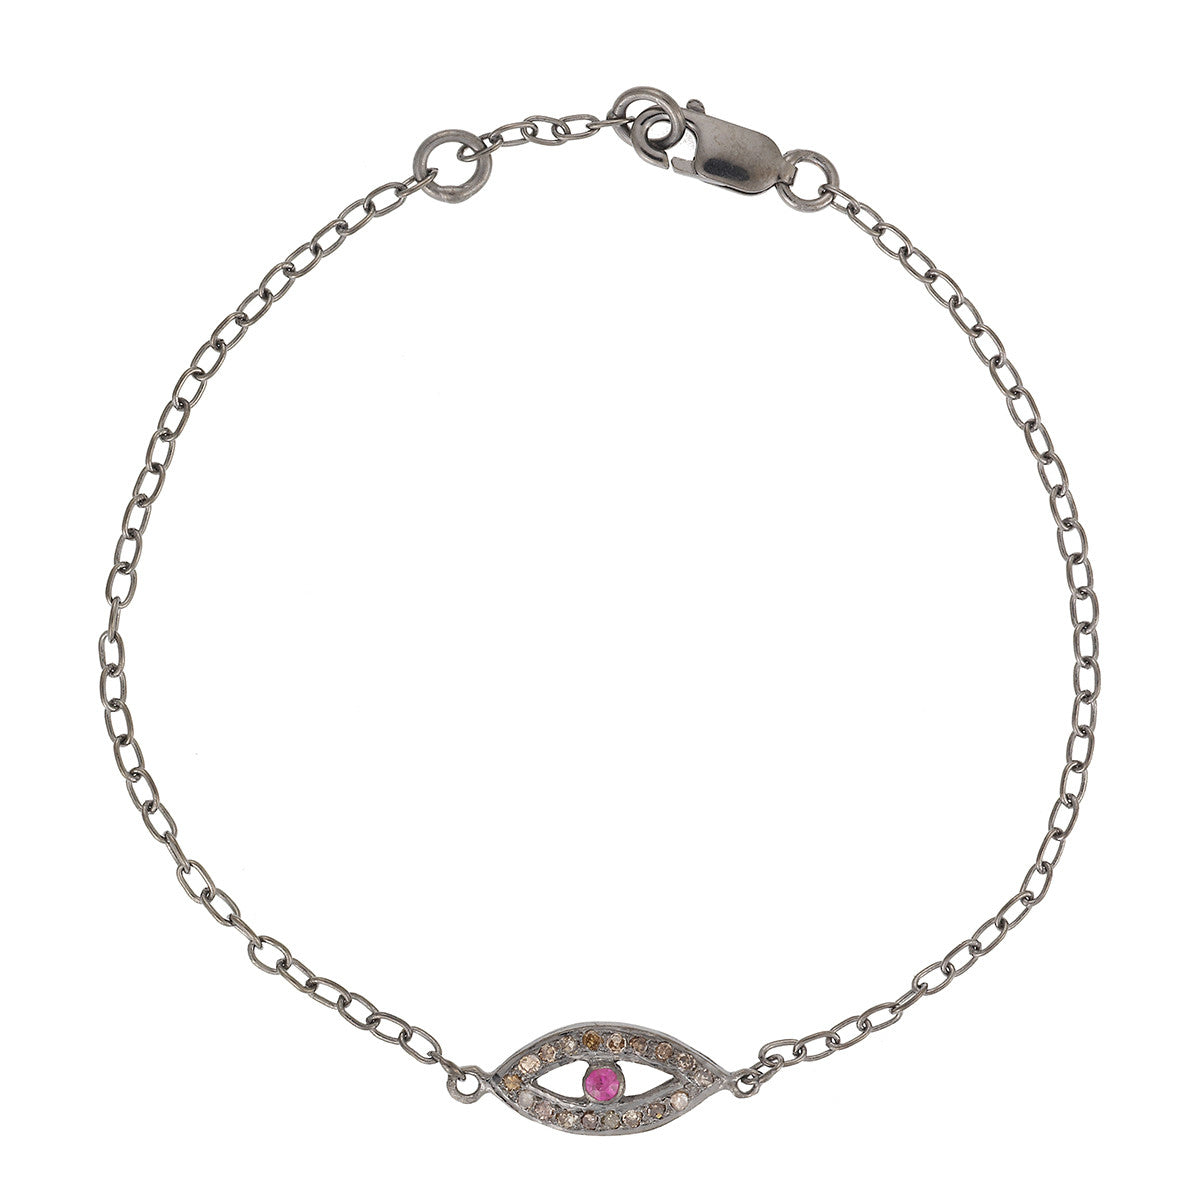 Small Eye Bracelet - Ruby